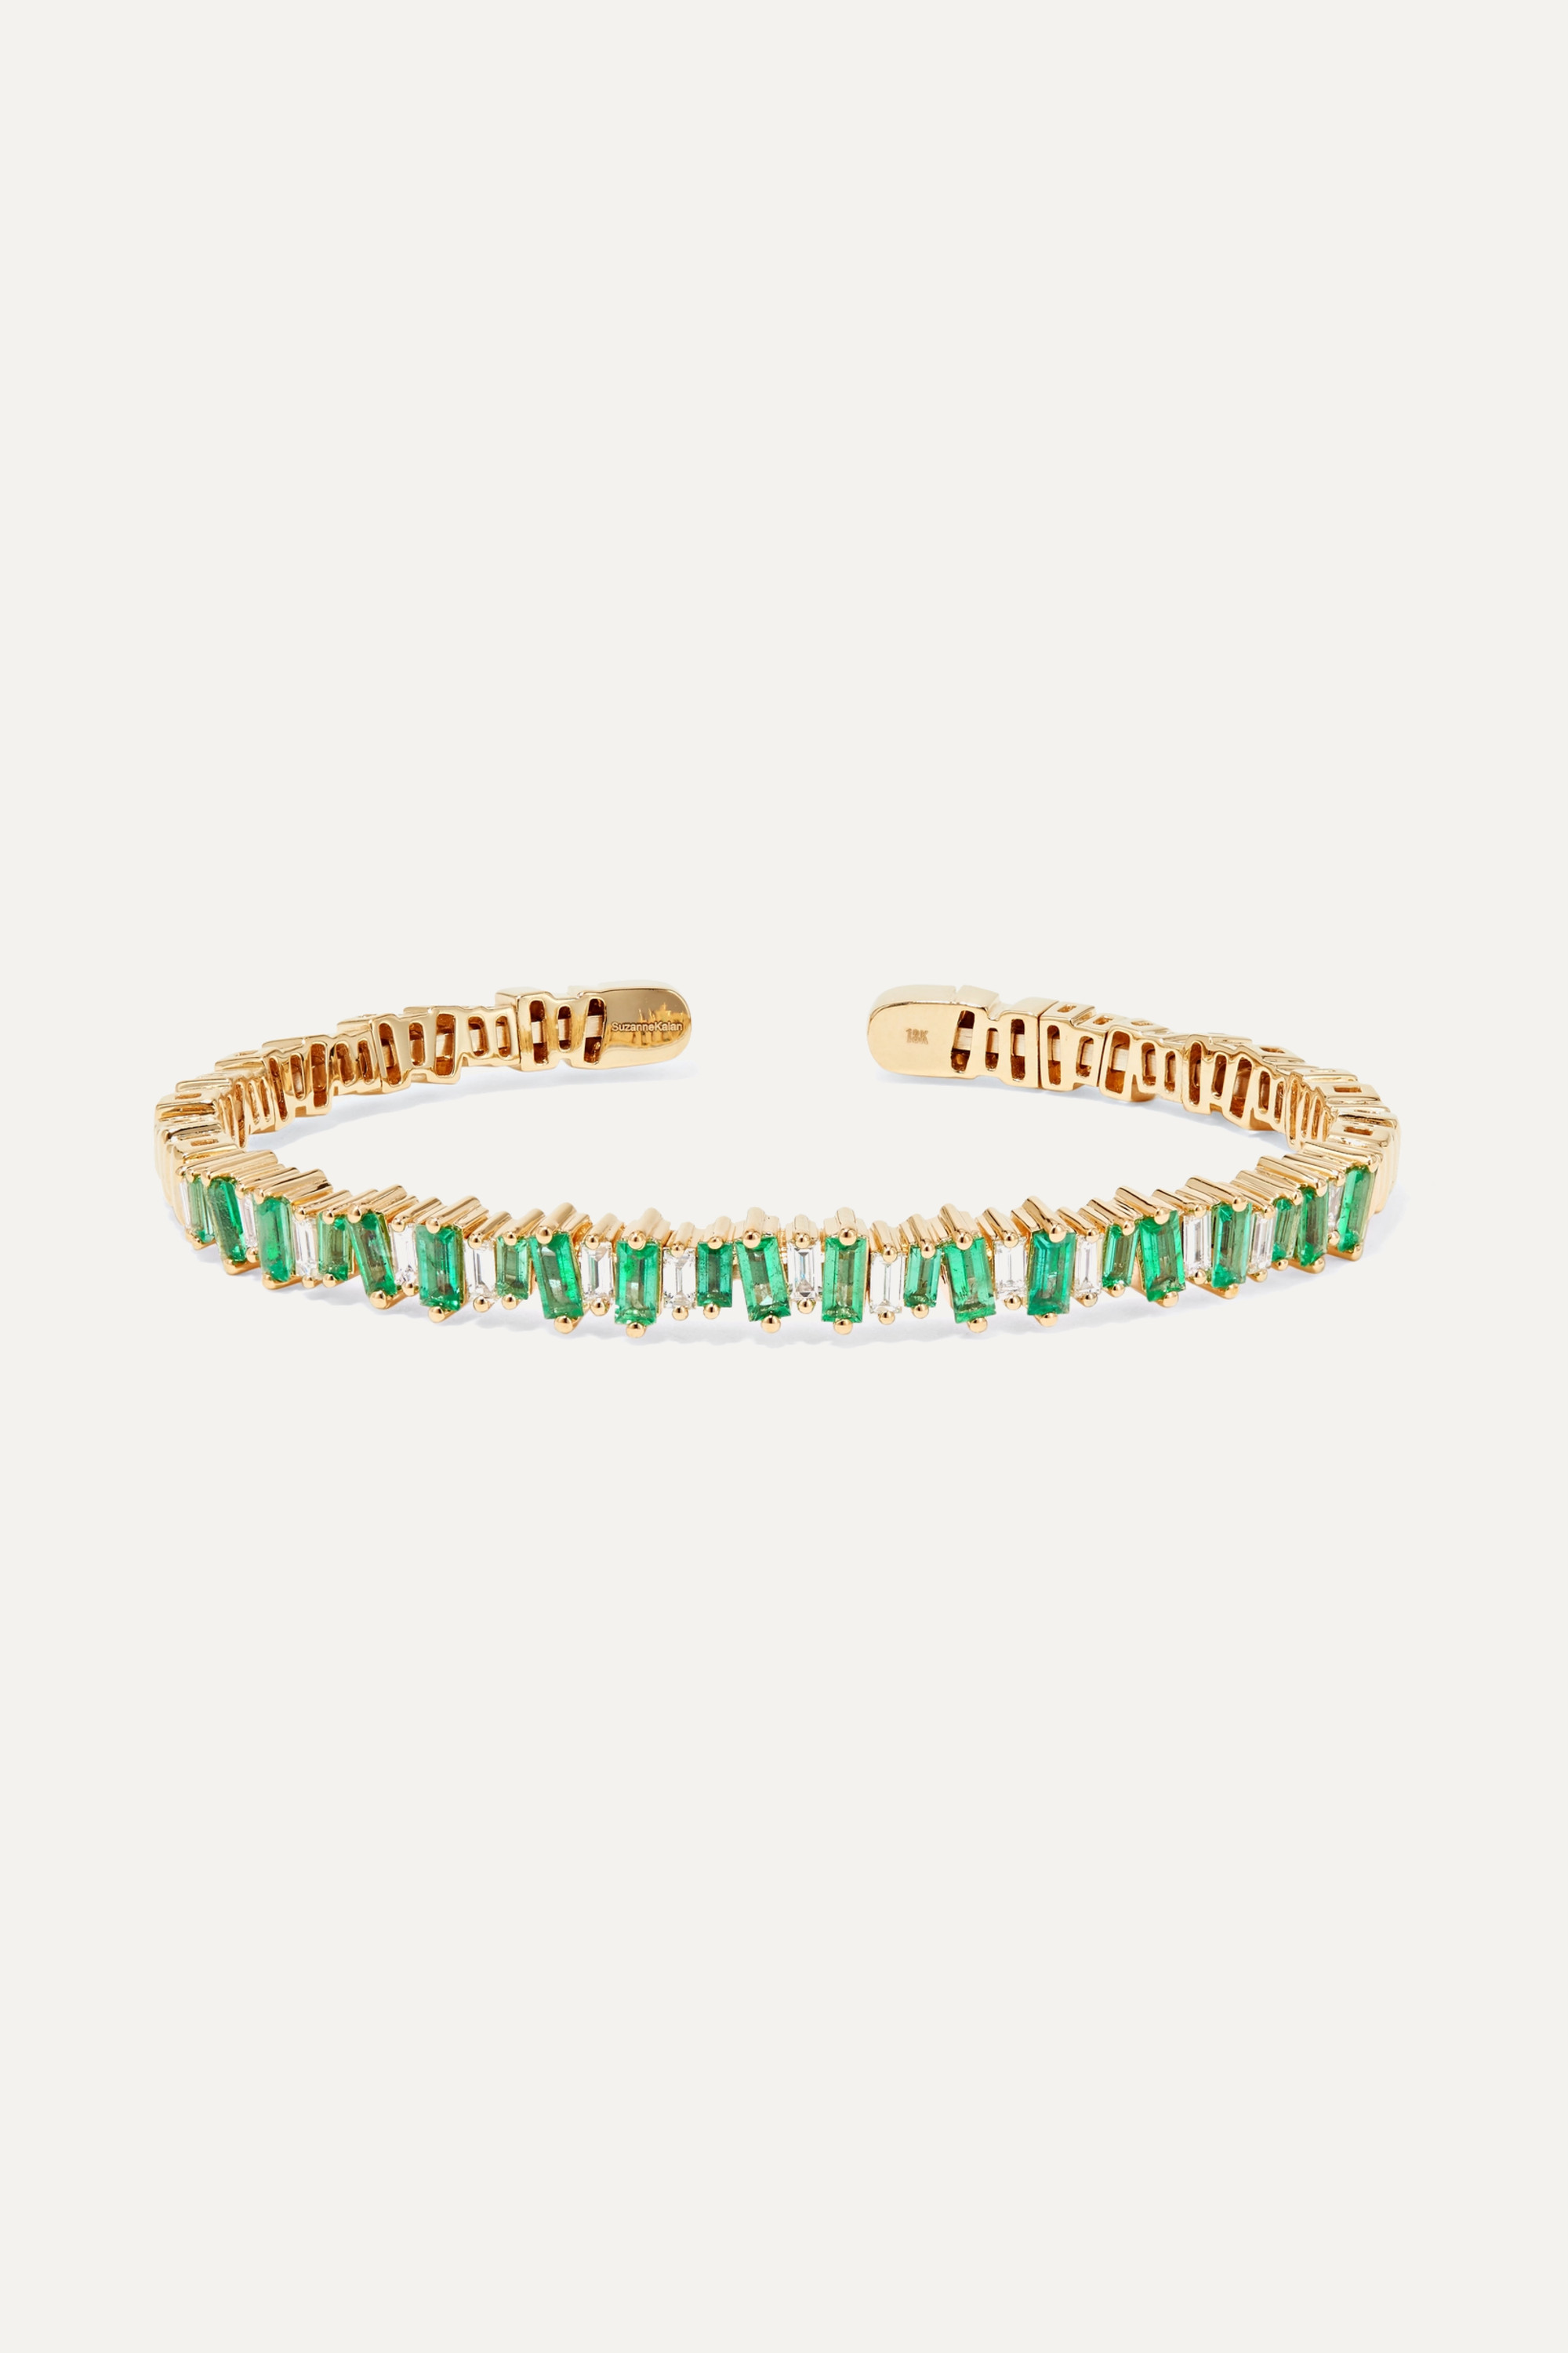 Suzanne Kalan 18-karat gold, emerald and diamond cuff